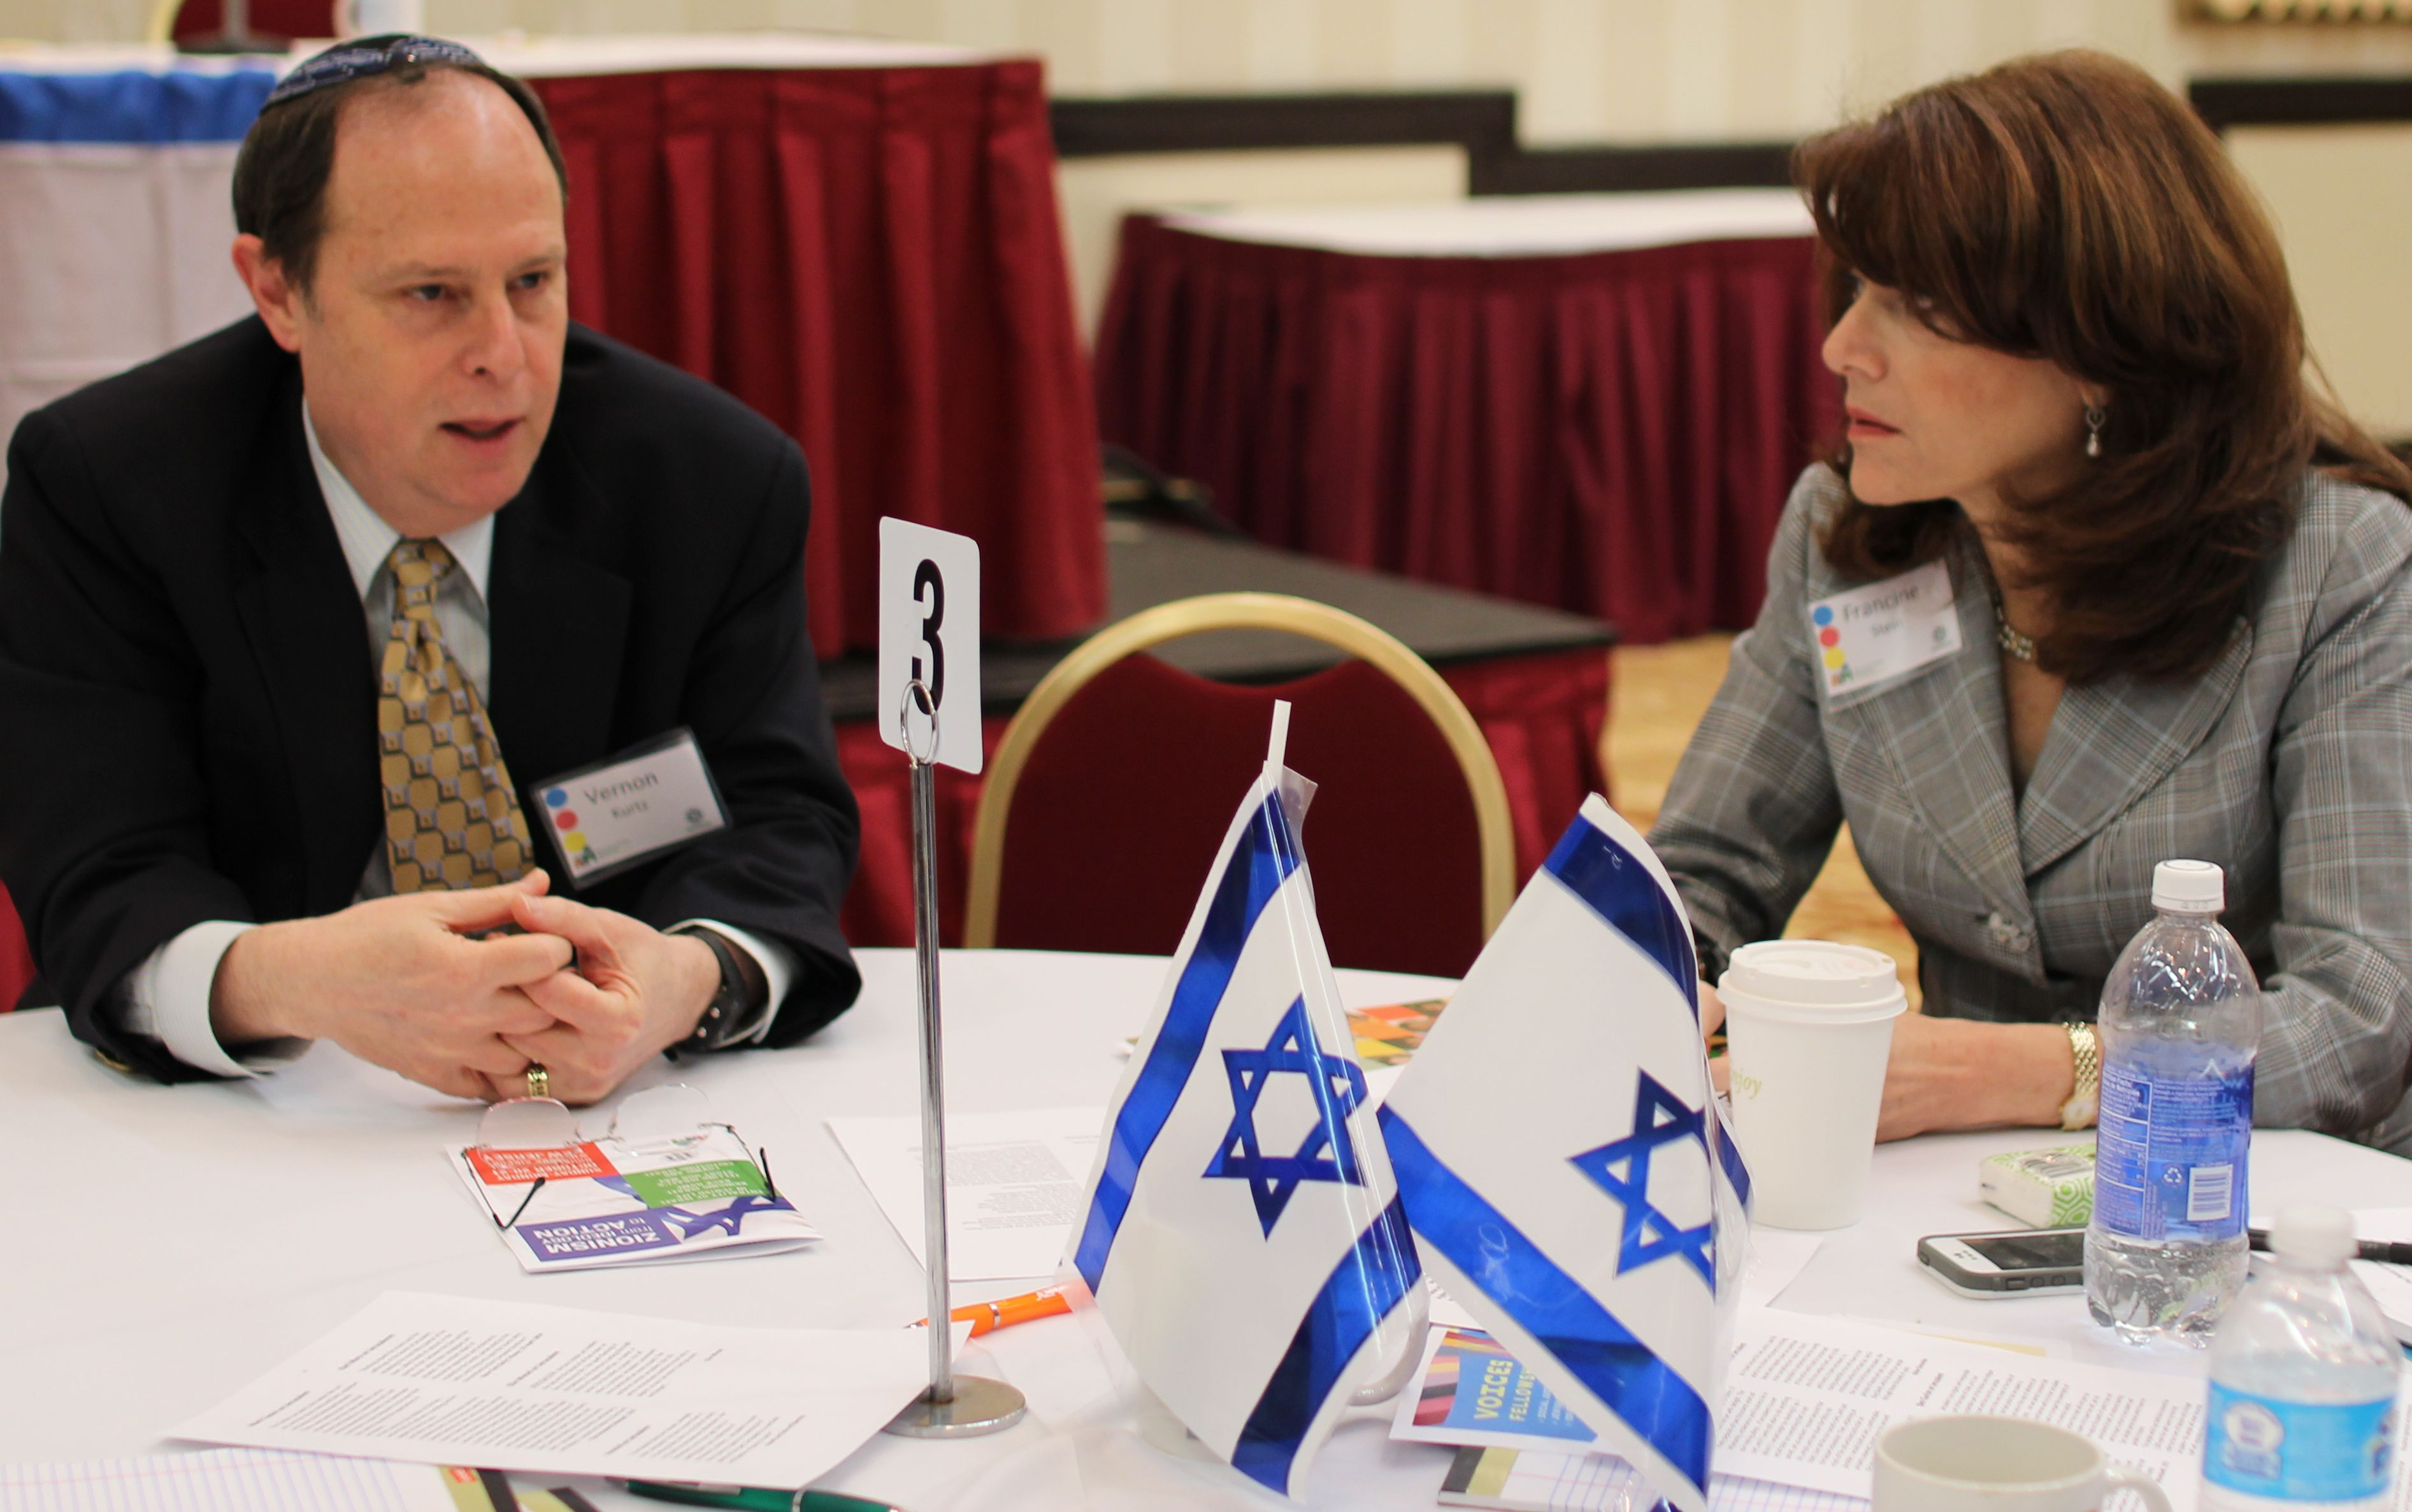 AZM President Rabbi Vernon Kurtz shares a point with Conference Chairman Dr. Francine Stein